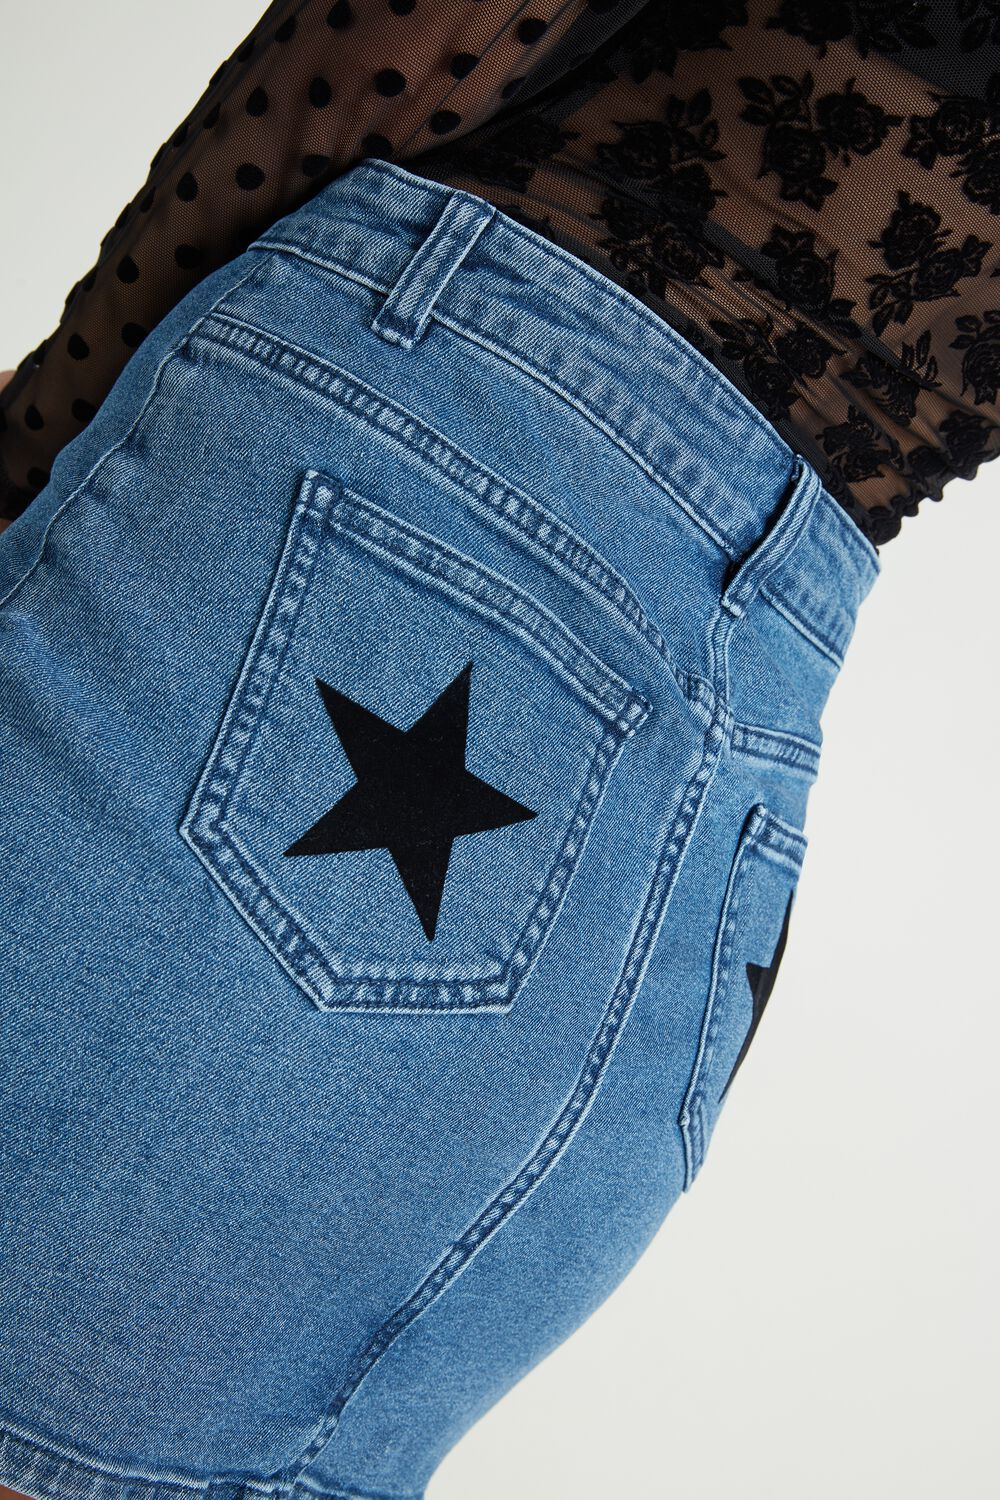 Denim Skirt with Flocked Stars